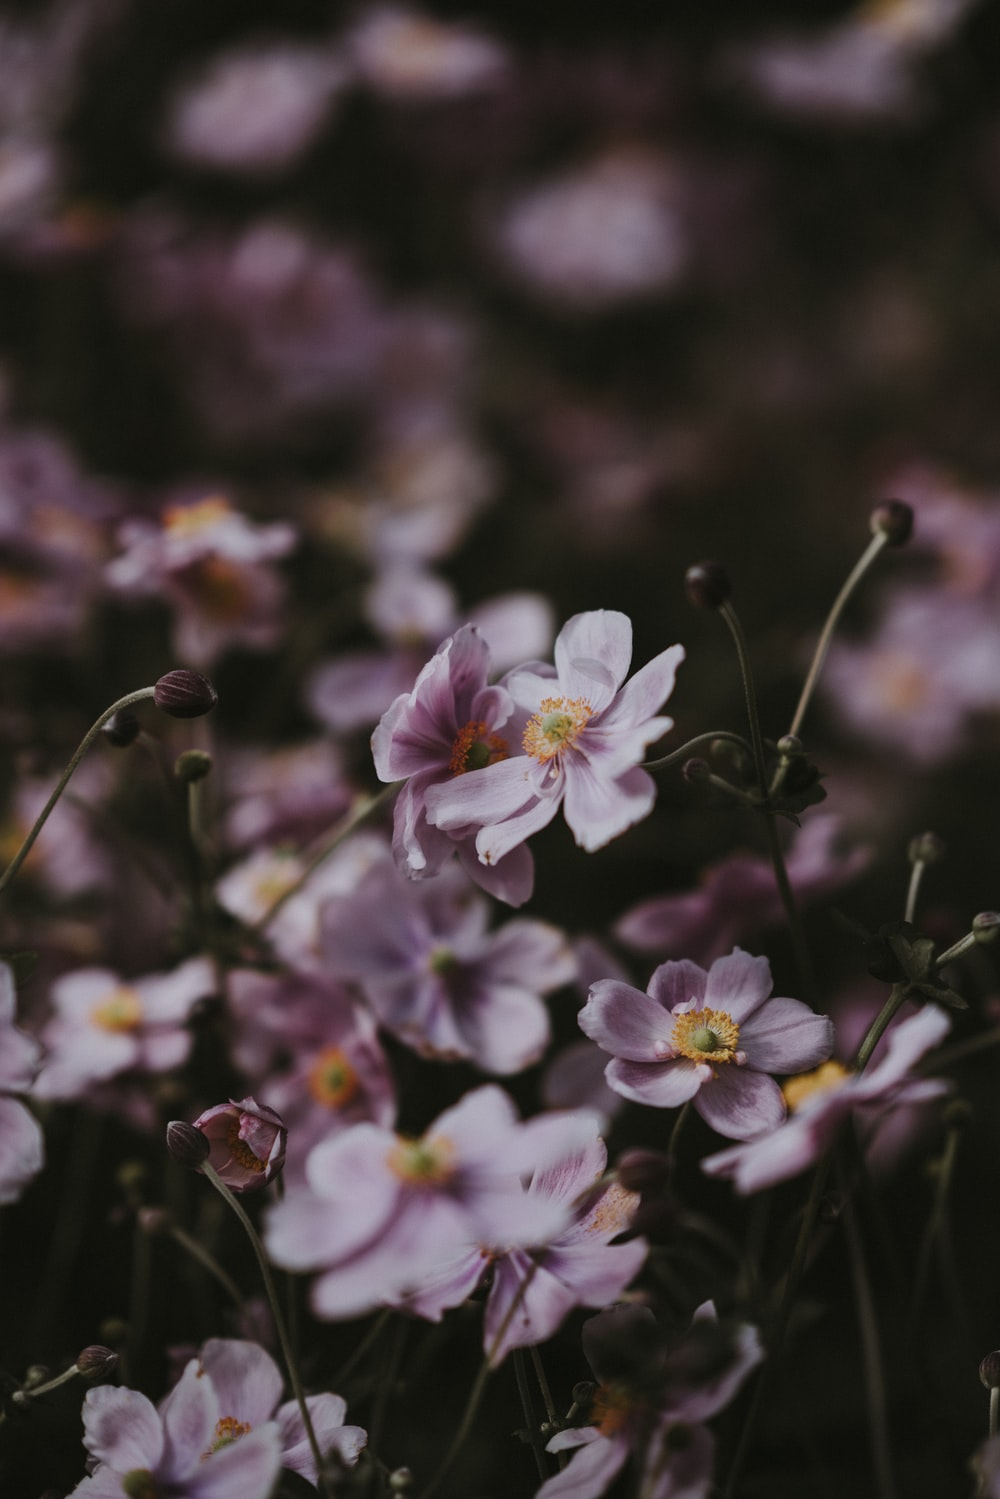 selective focus photography of pink petaled flowers in bloom